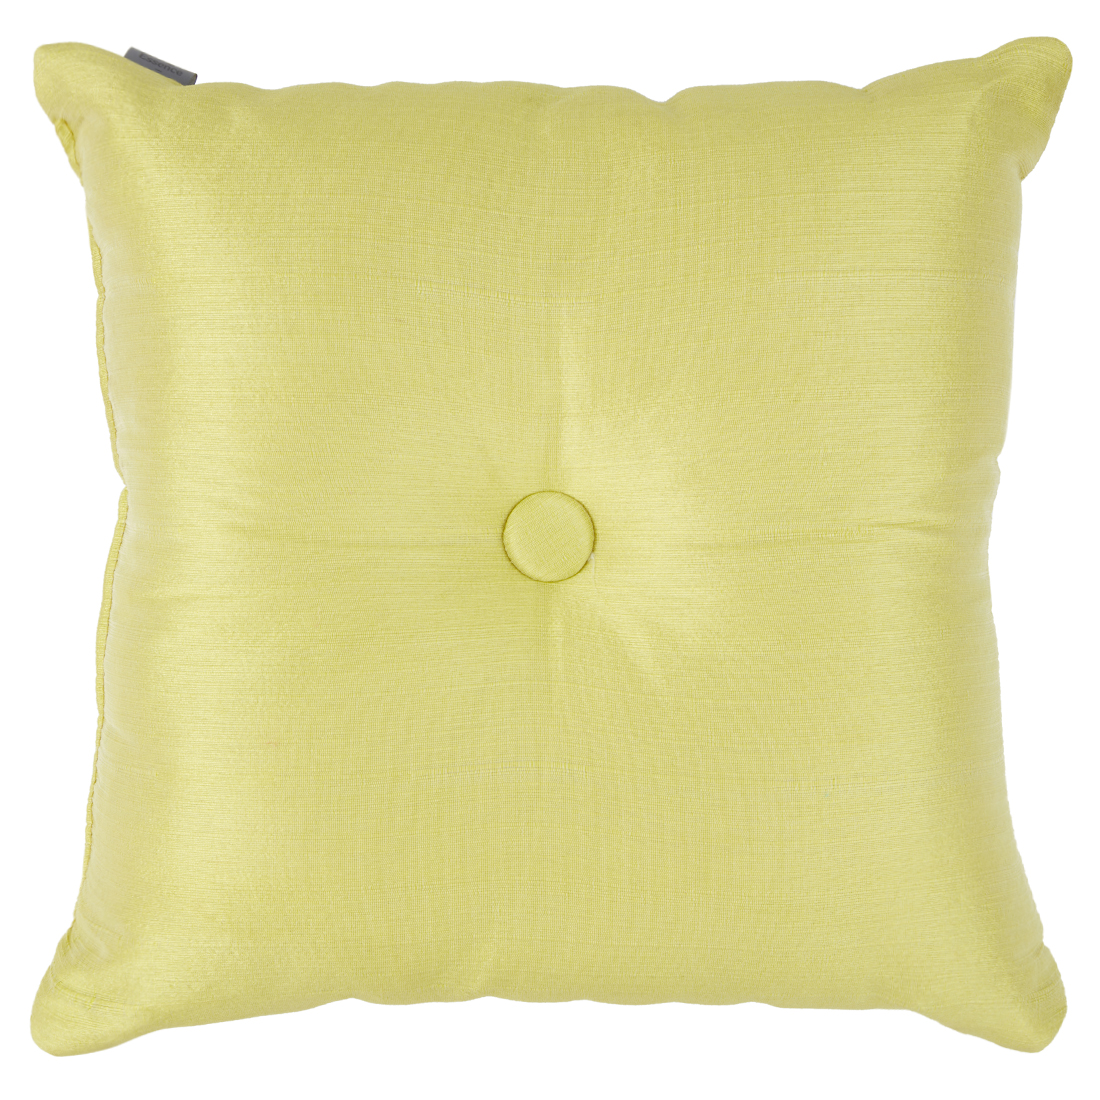 Fiesta Filled Cushion Green Polyester Filled Cushions in Green Colour by Living Essence